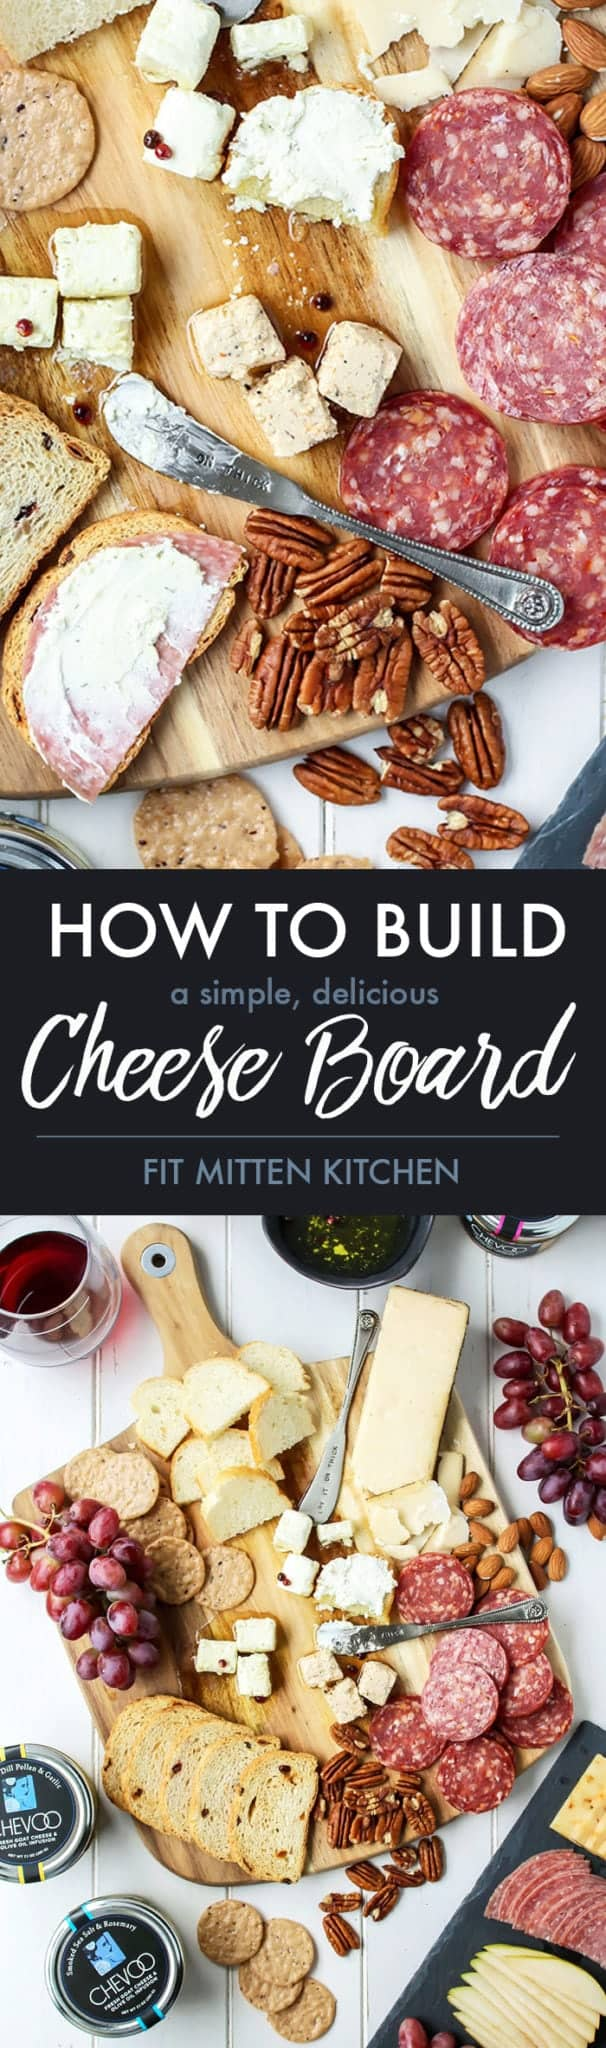 How to build a cheese board pinterest image goat cheese salami walnuts bread